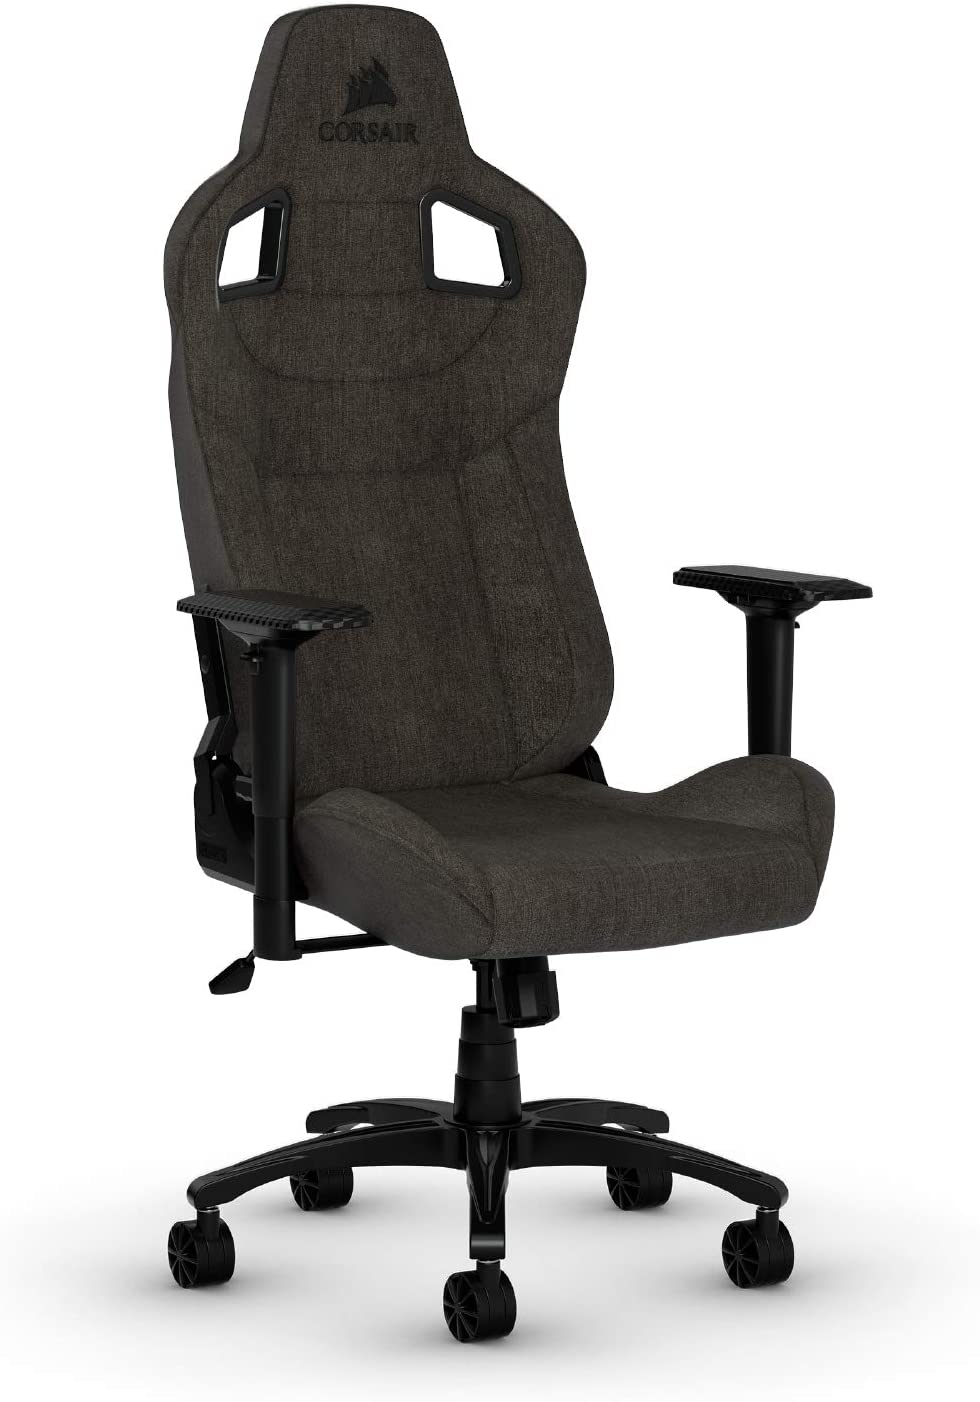 Best gaming chair for ps4 | Gaming Chair In 2021